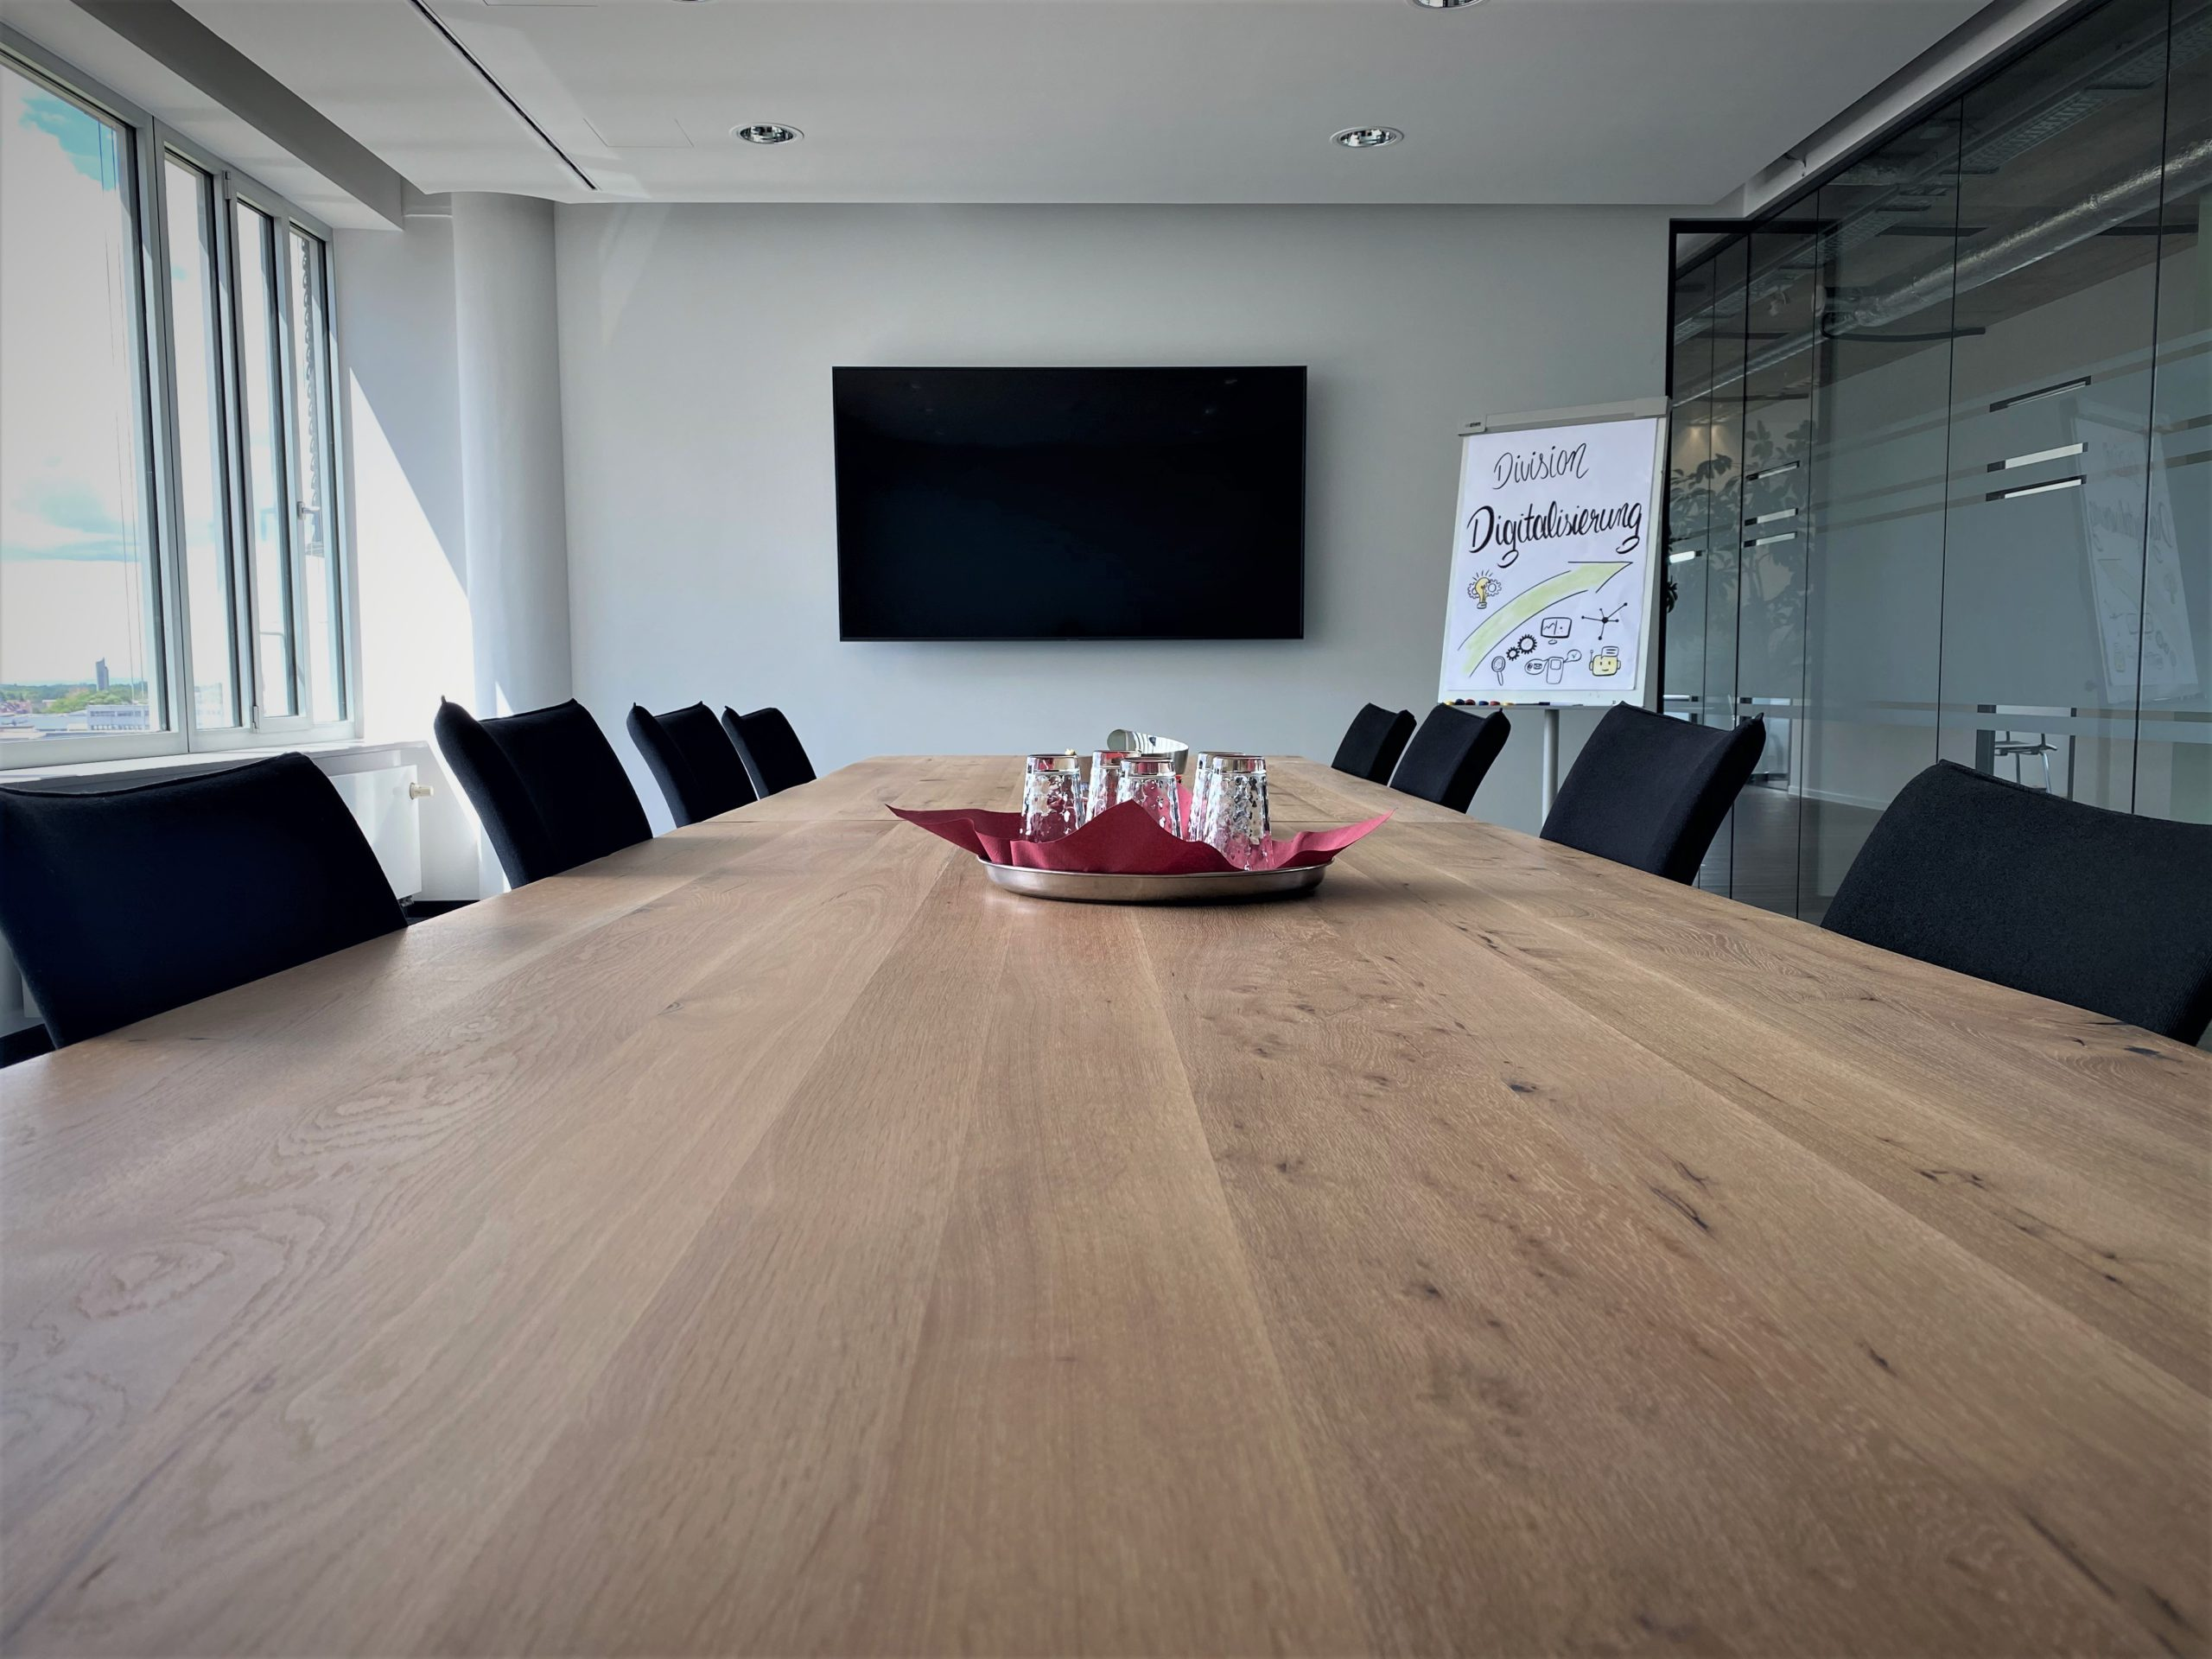 Image of the INTARGIA - a valantic company office, Meetingroom